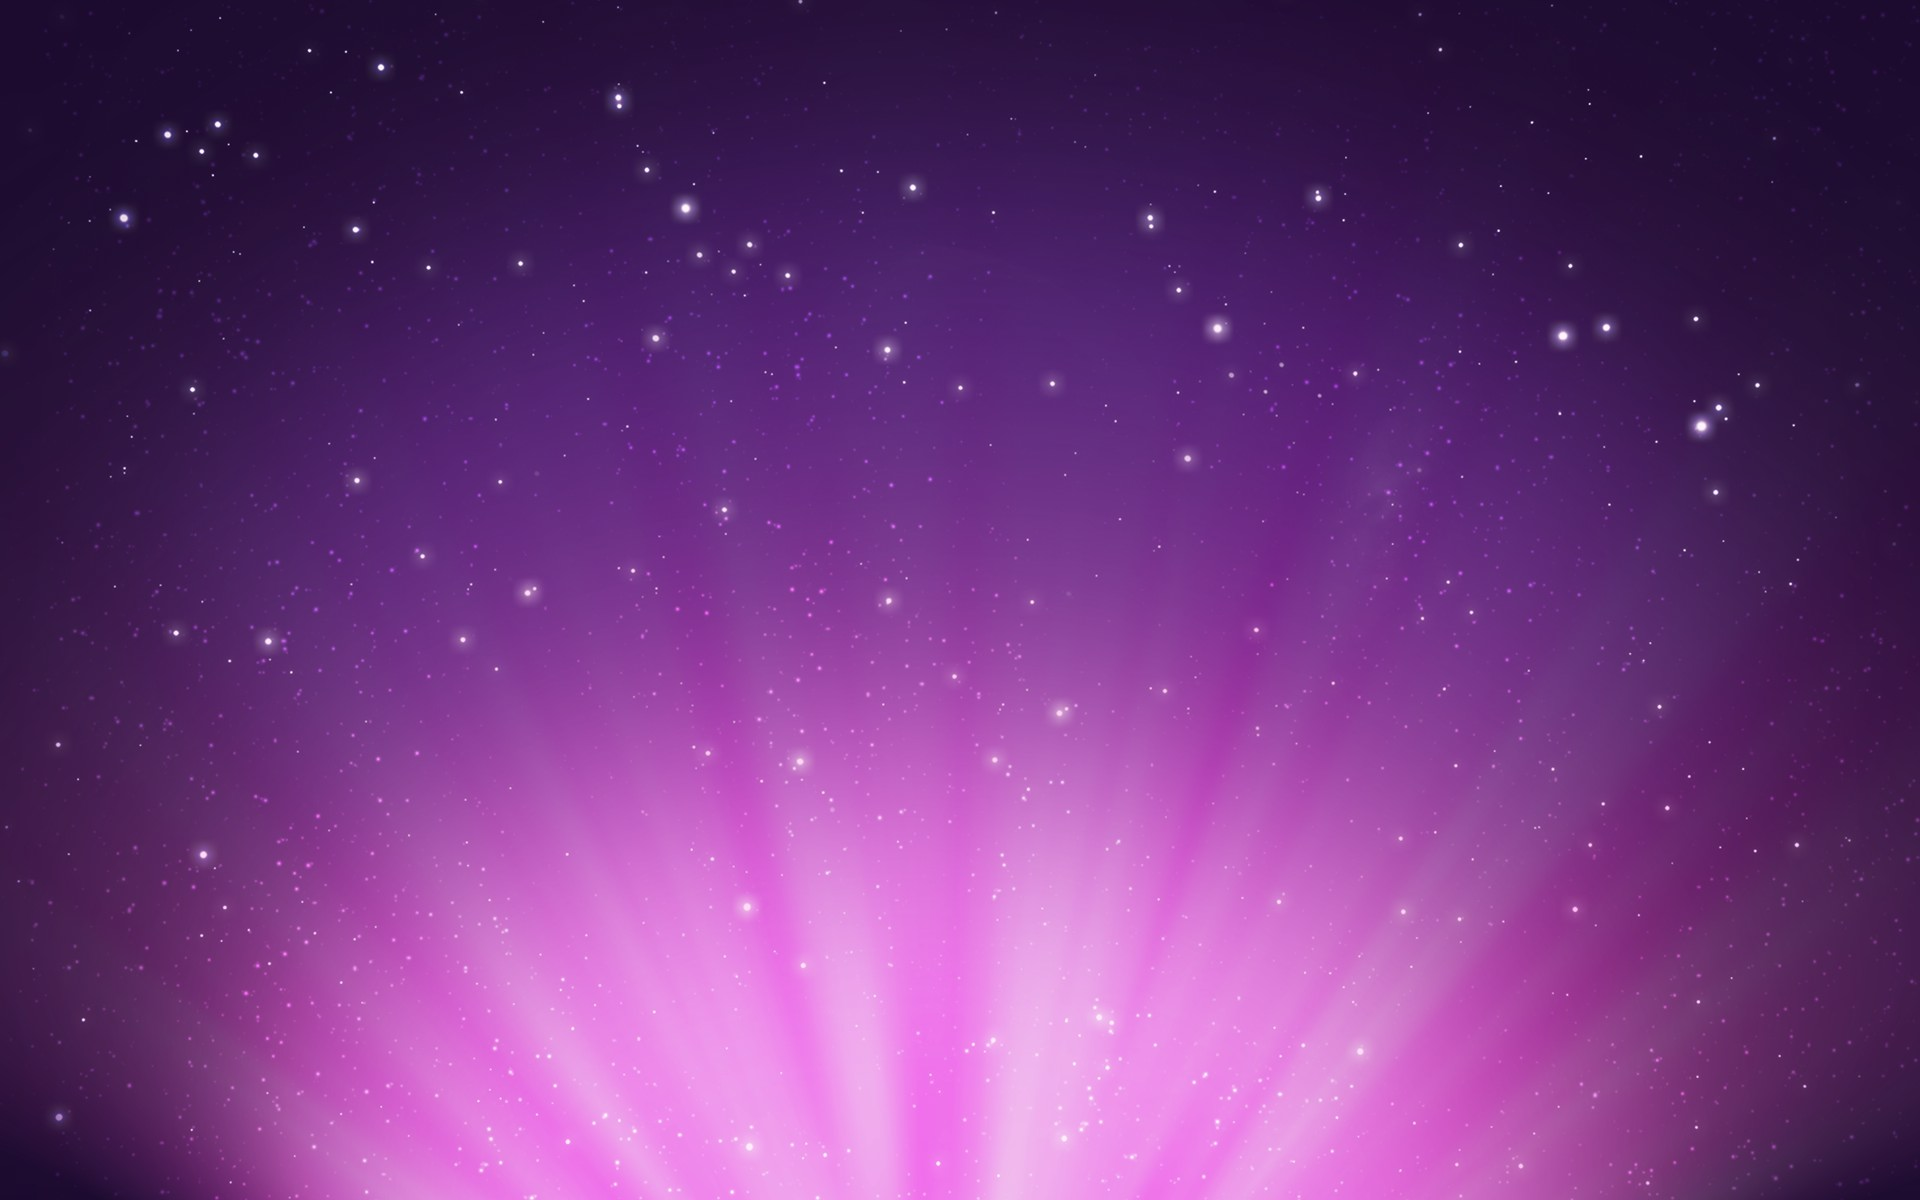 Backgrounds For Church (26 Wallpapers) – Adorable Wallpapers